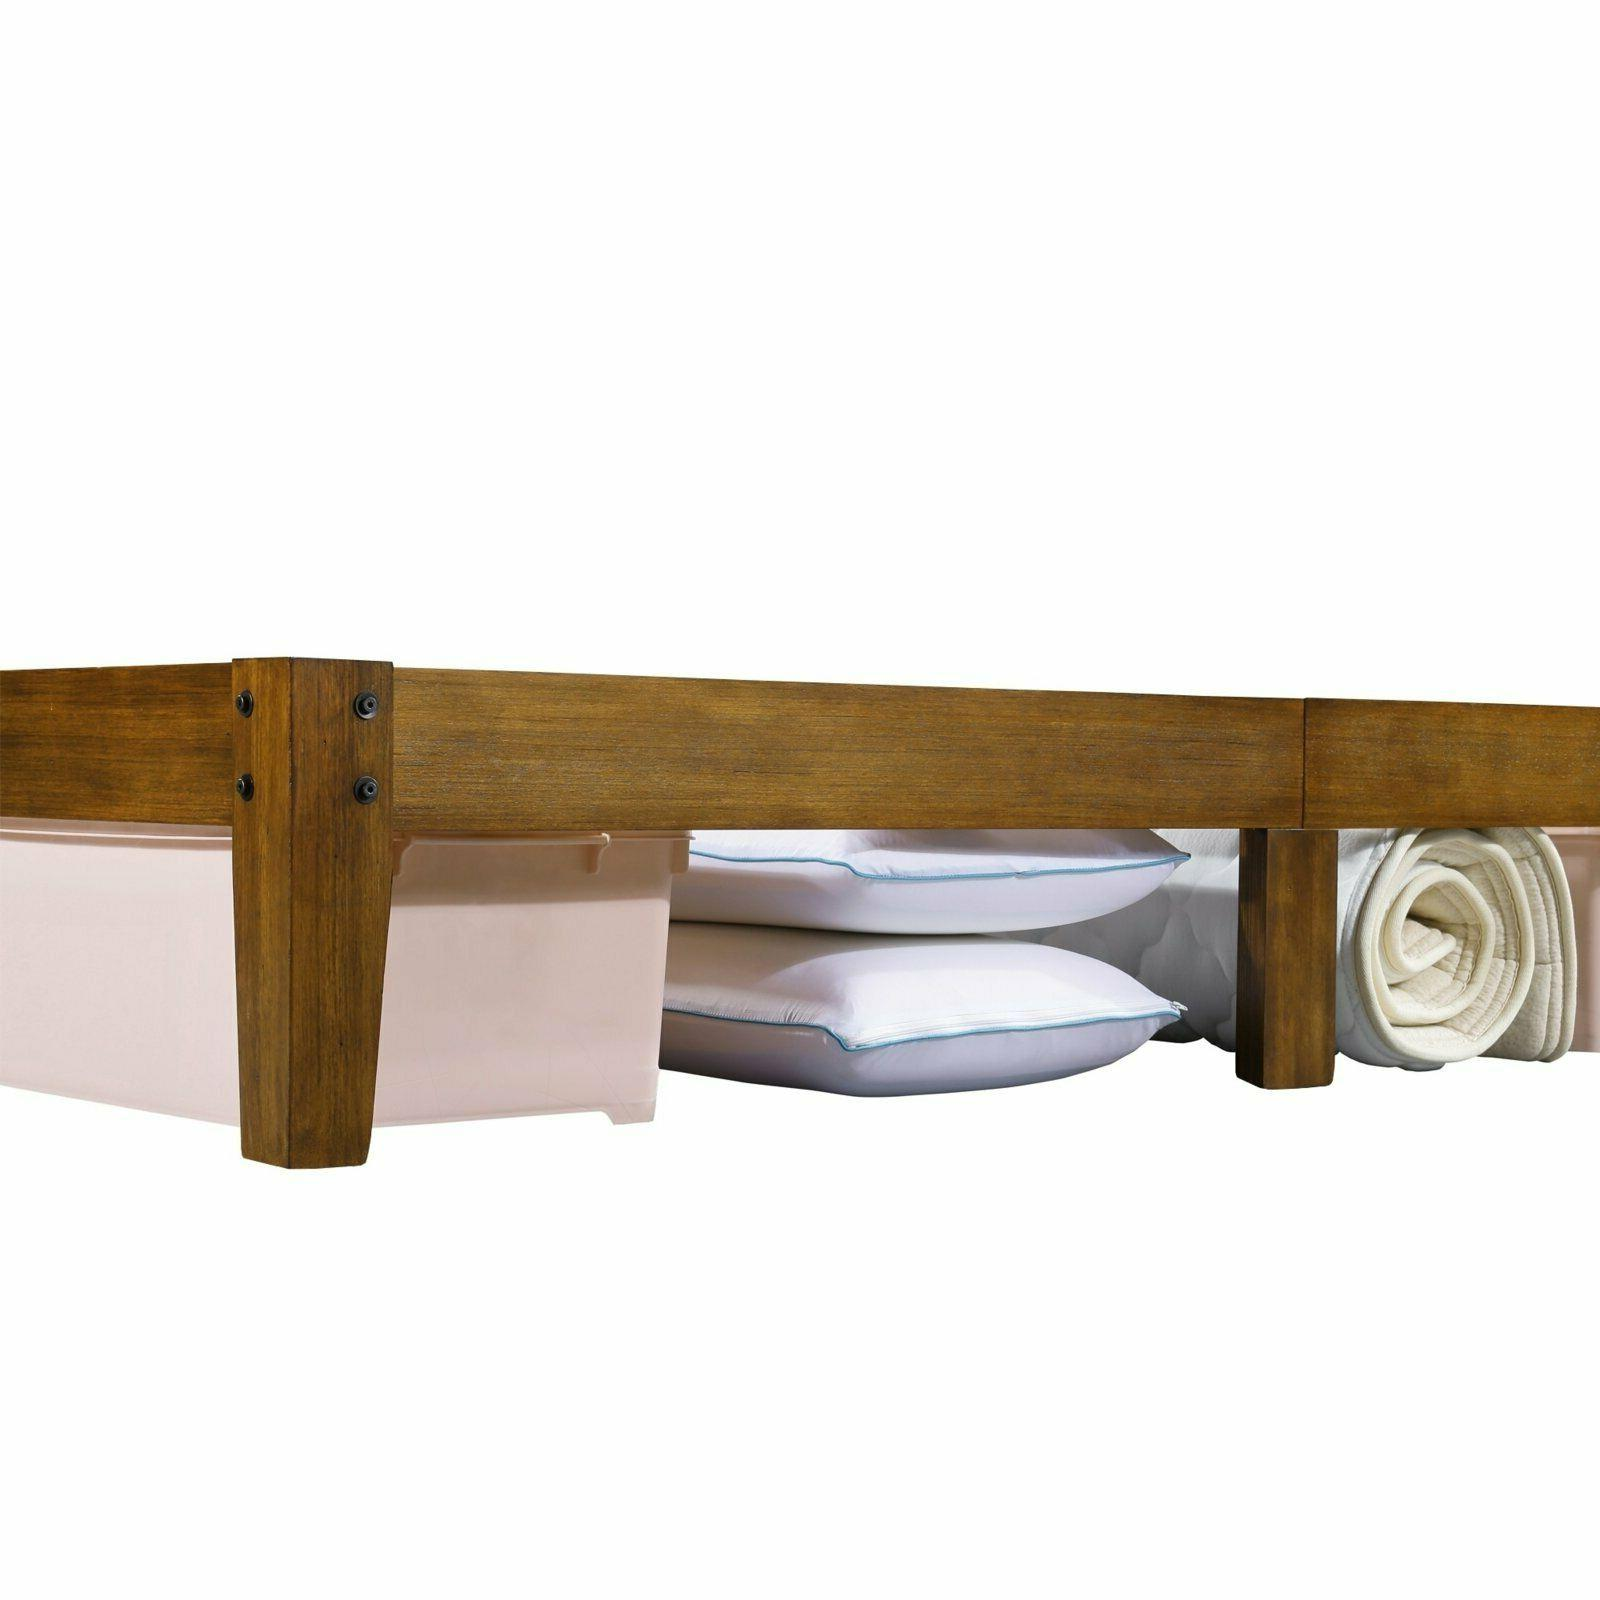 Rustic Wood Platform Bed Frame Queen 14 Inch High Cherry Brown Finish